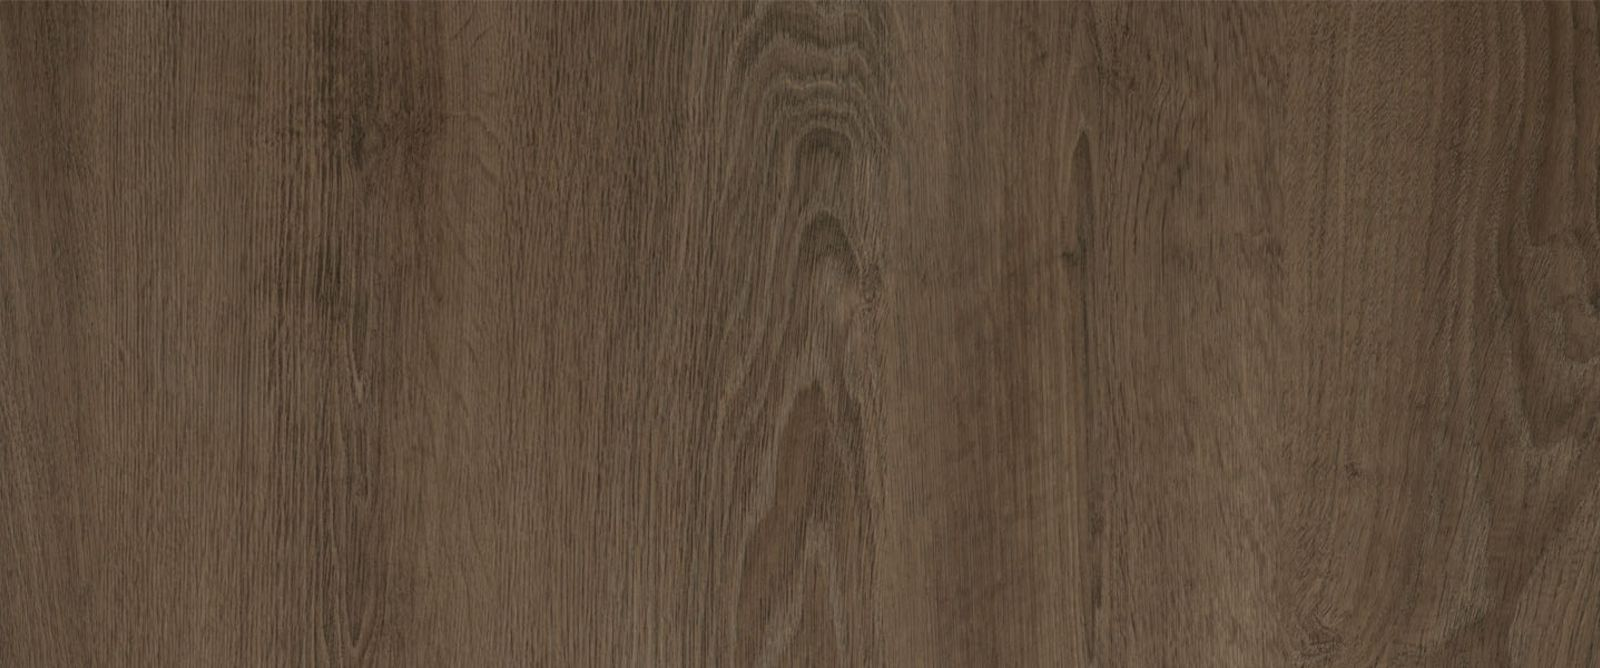 skai® woodec Turner Oak toffee